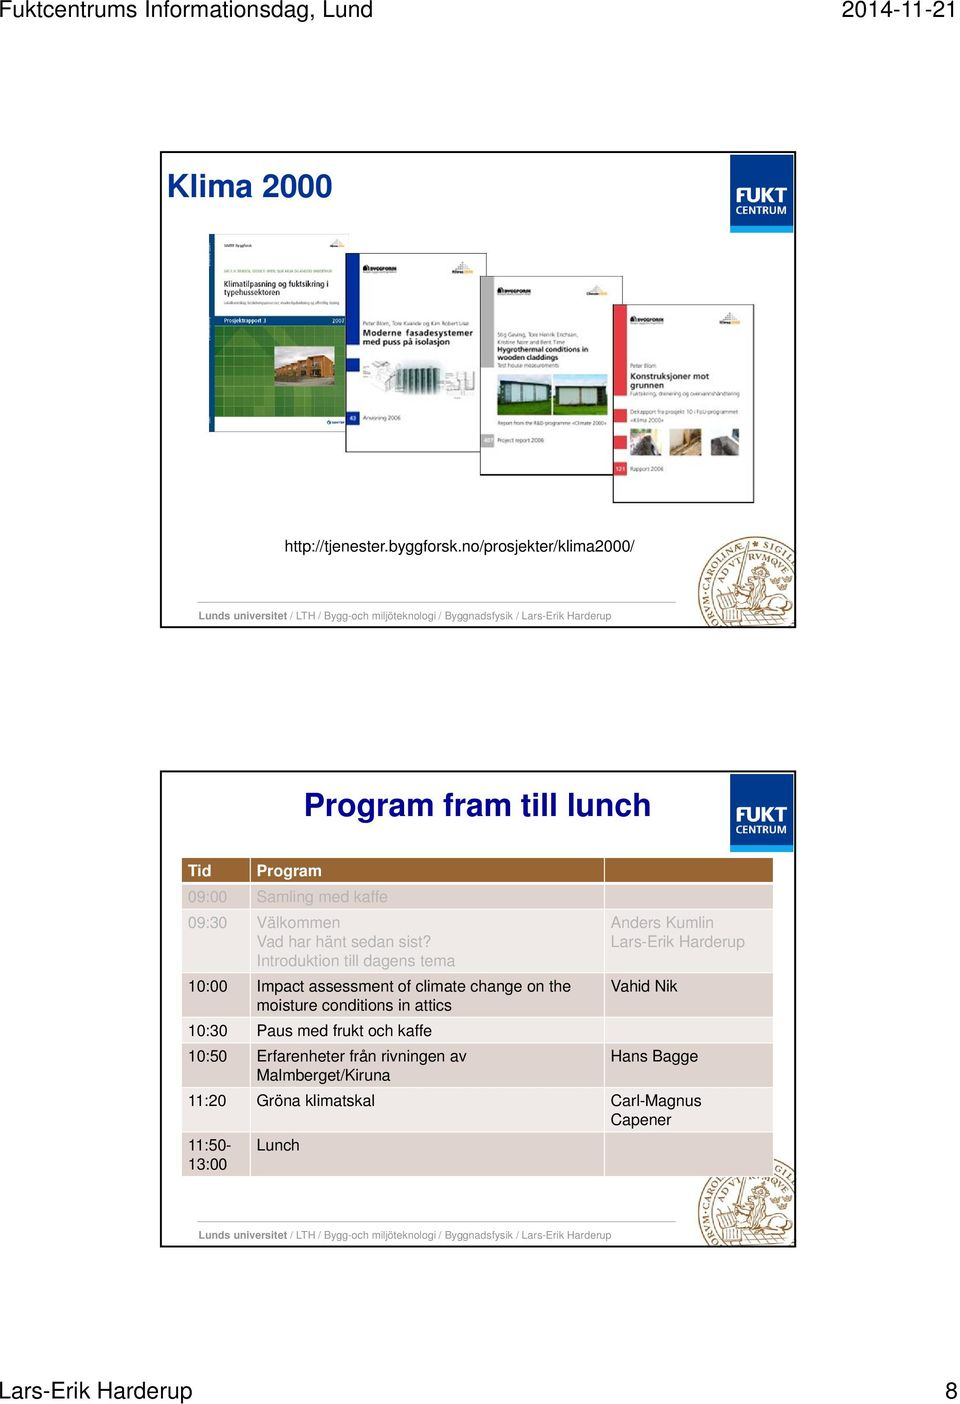 sist? Introduktion till dagens tema 10:00 Impact assessment of climate change on the moisture conditions in attics 10:30